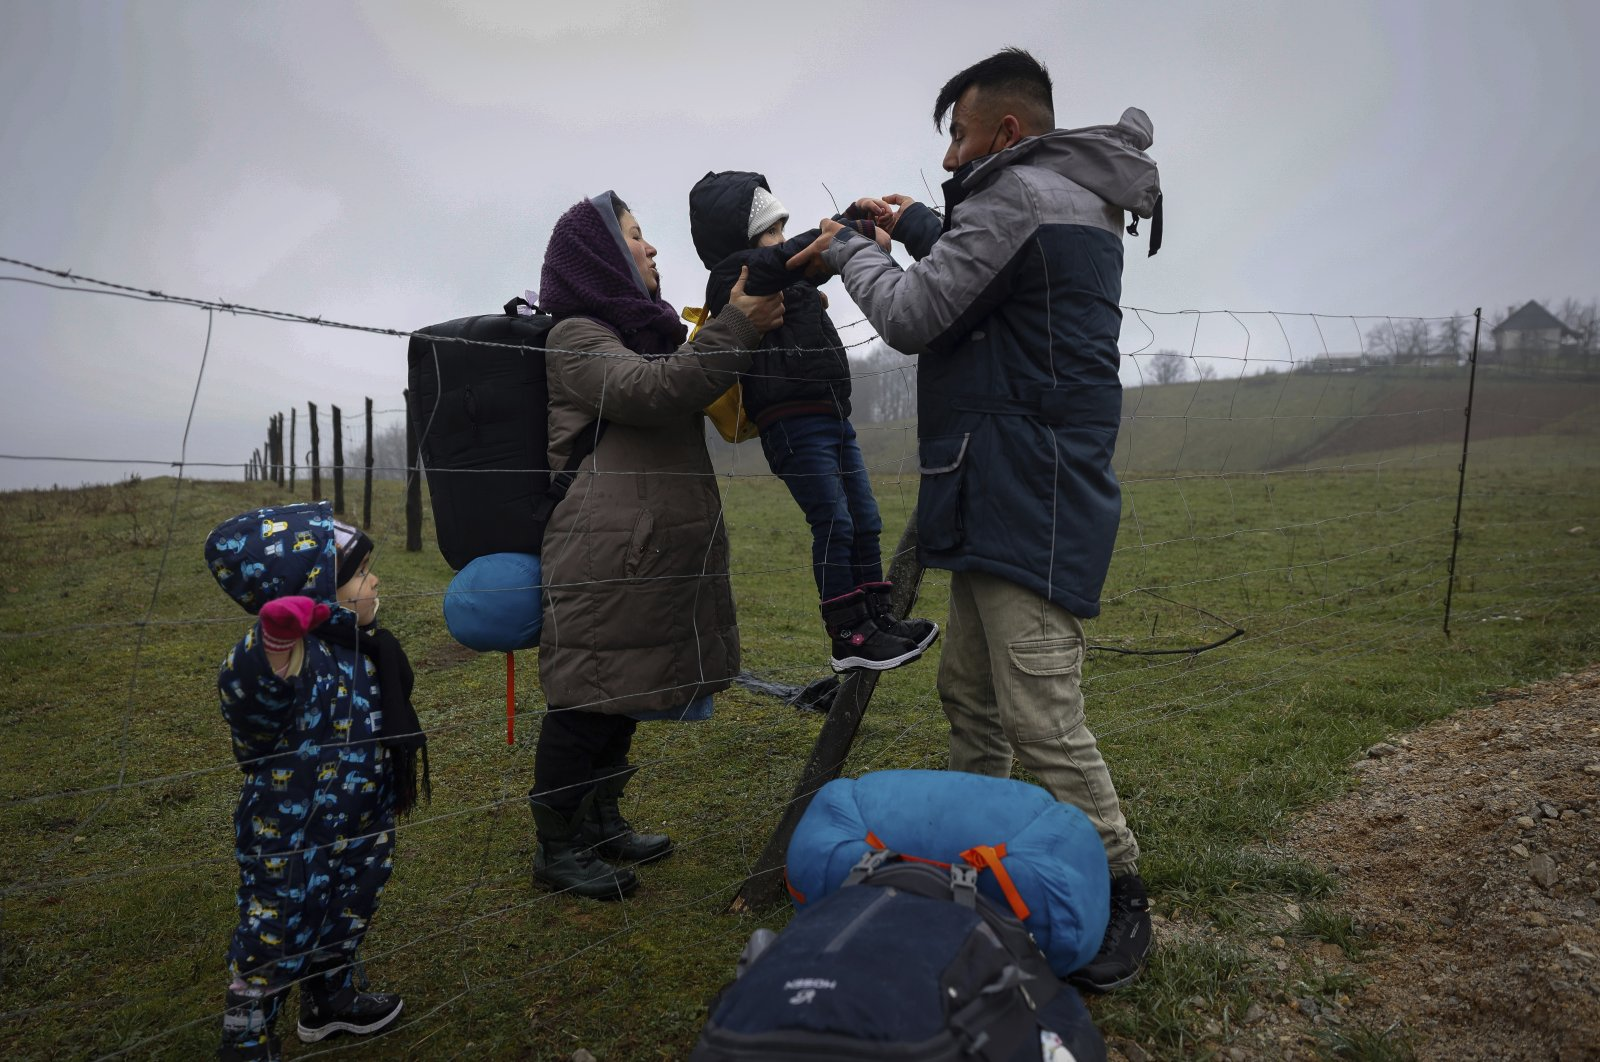 Malika, 2nd left, passes their 5 years old daughter to her husband Mohammed as the Afghan family climb over a wire fence close to the Bosnian-Croatian border near Velika Kladusa in Bosnia-Herzegovina, Dec. 9. 2020. (AP Photo)